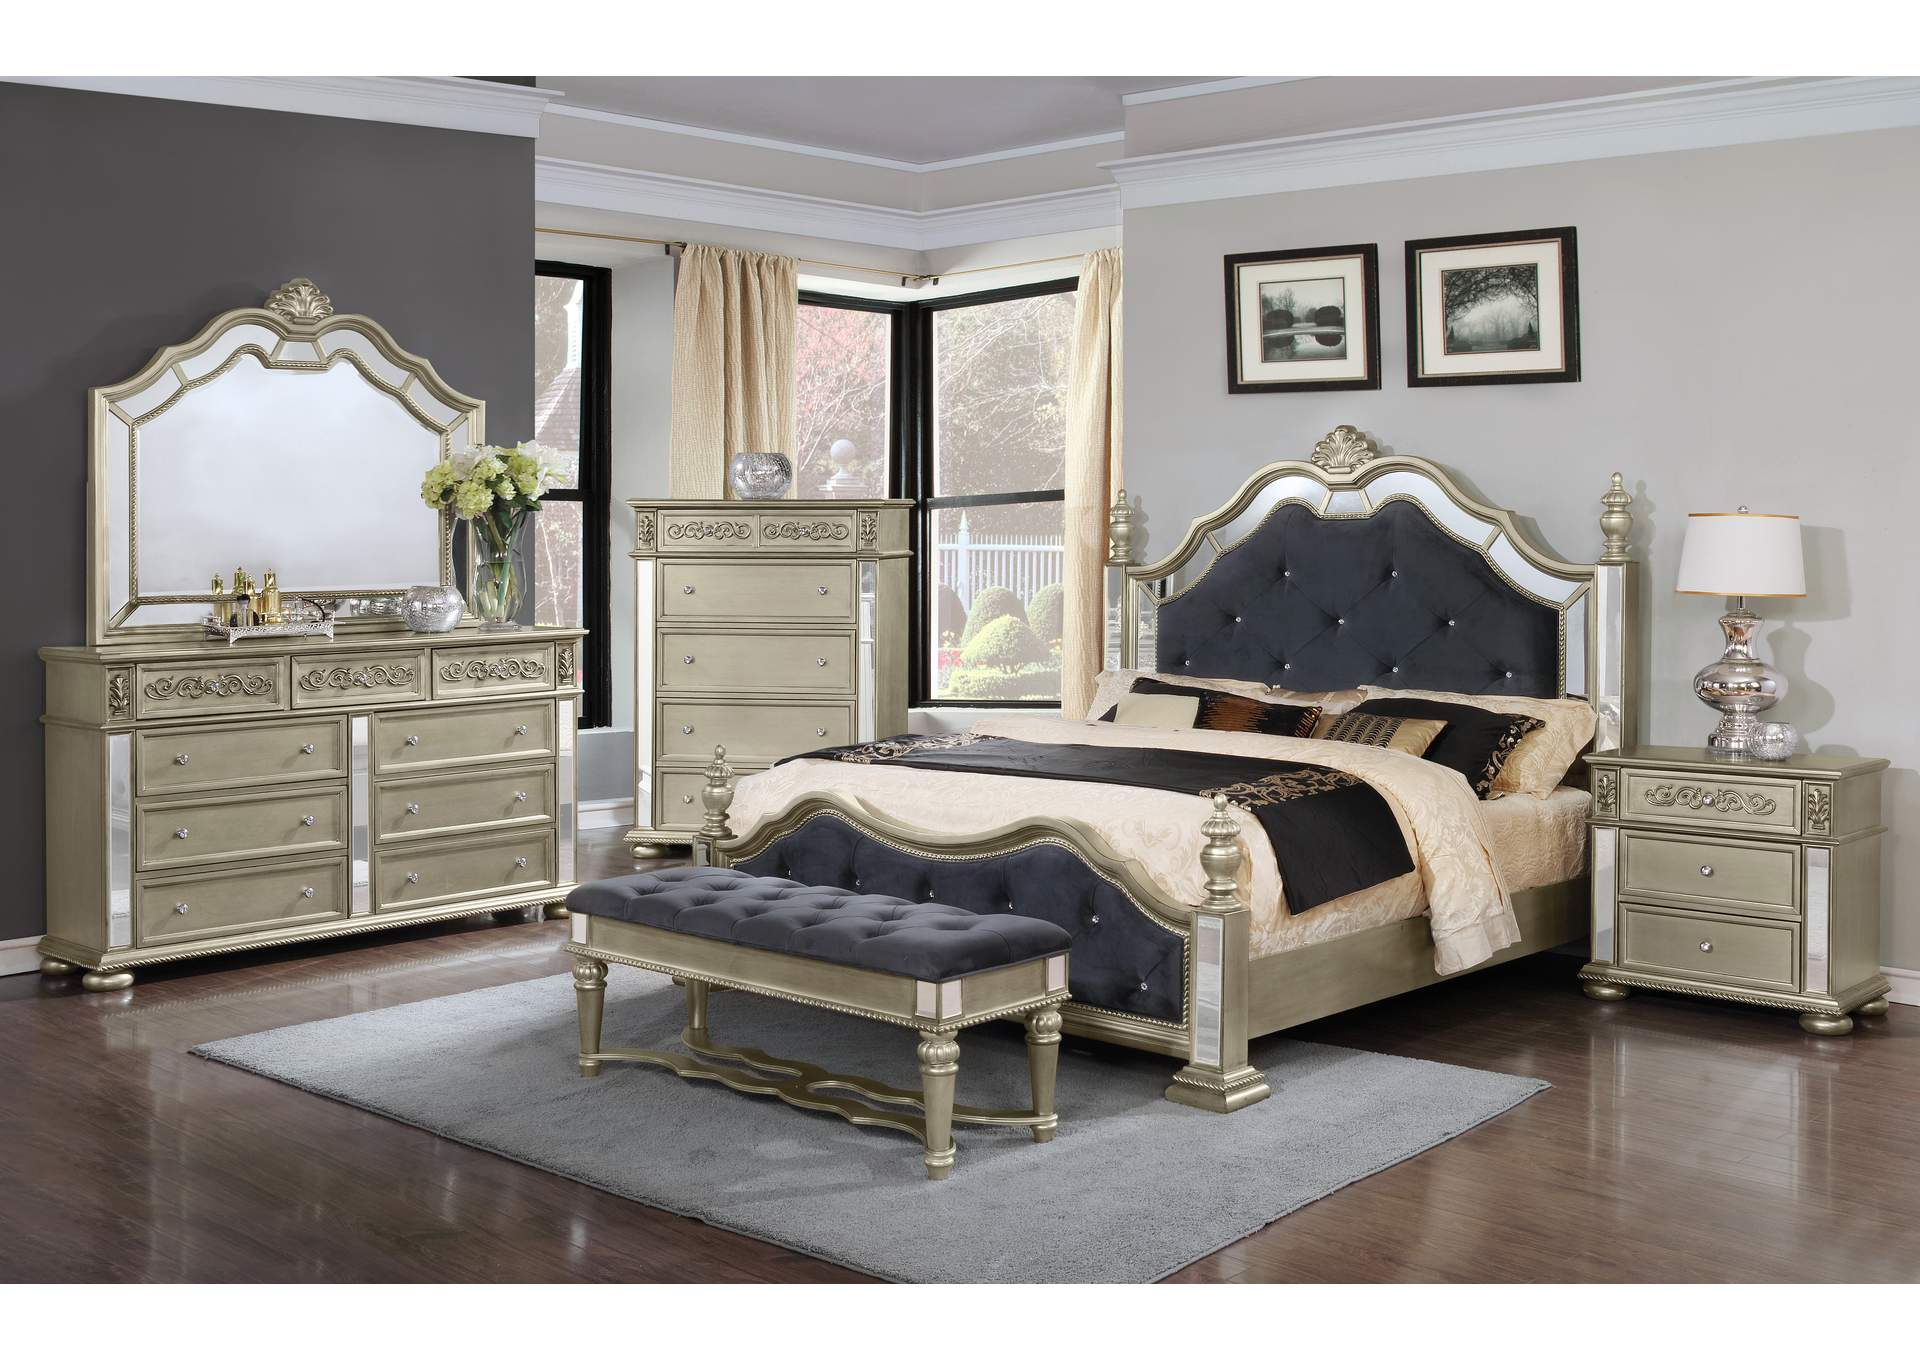 Silver Panel Queen 4 Piece Bedroom Set W/ Nightstand, Dresser & Mirror,Global Trading